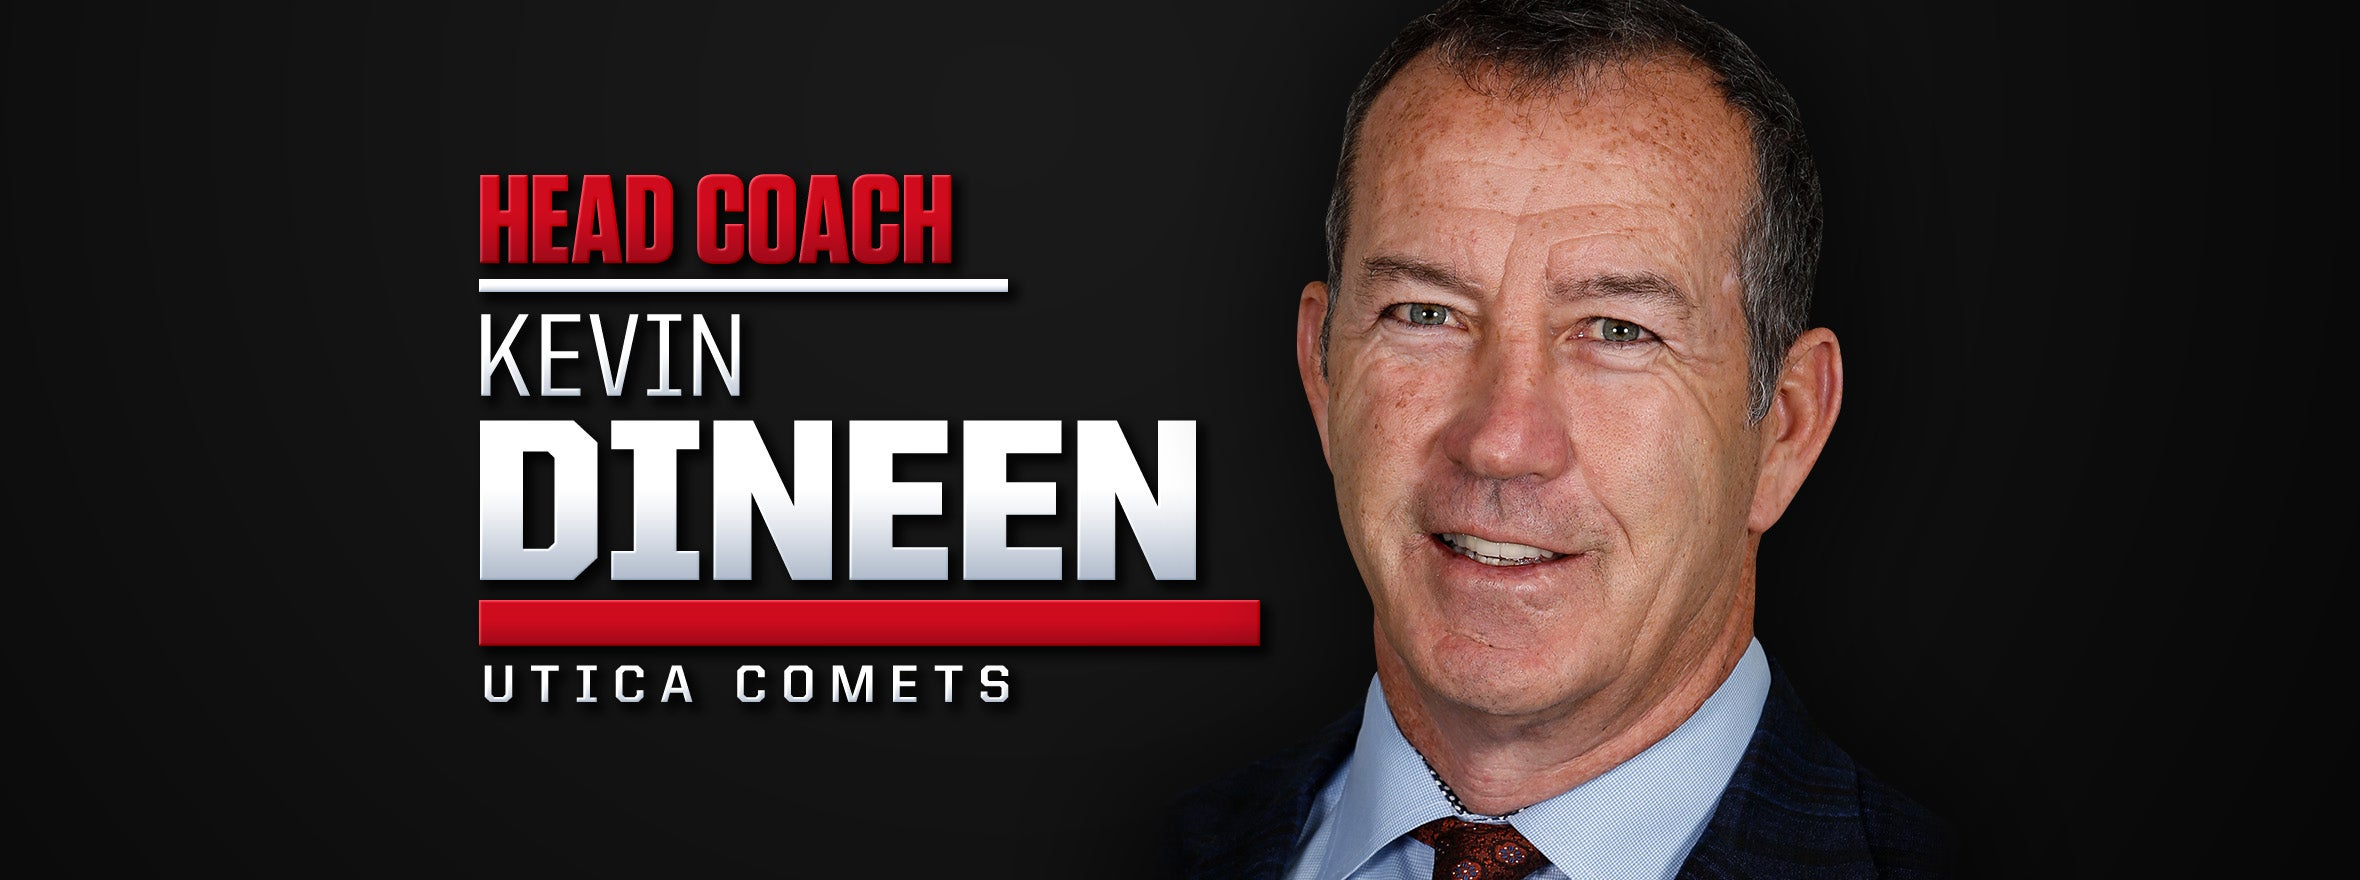 Kevin Dineen Named Third Head Coach in Comets History